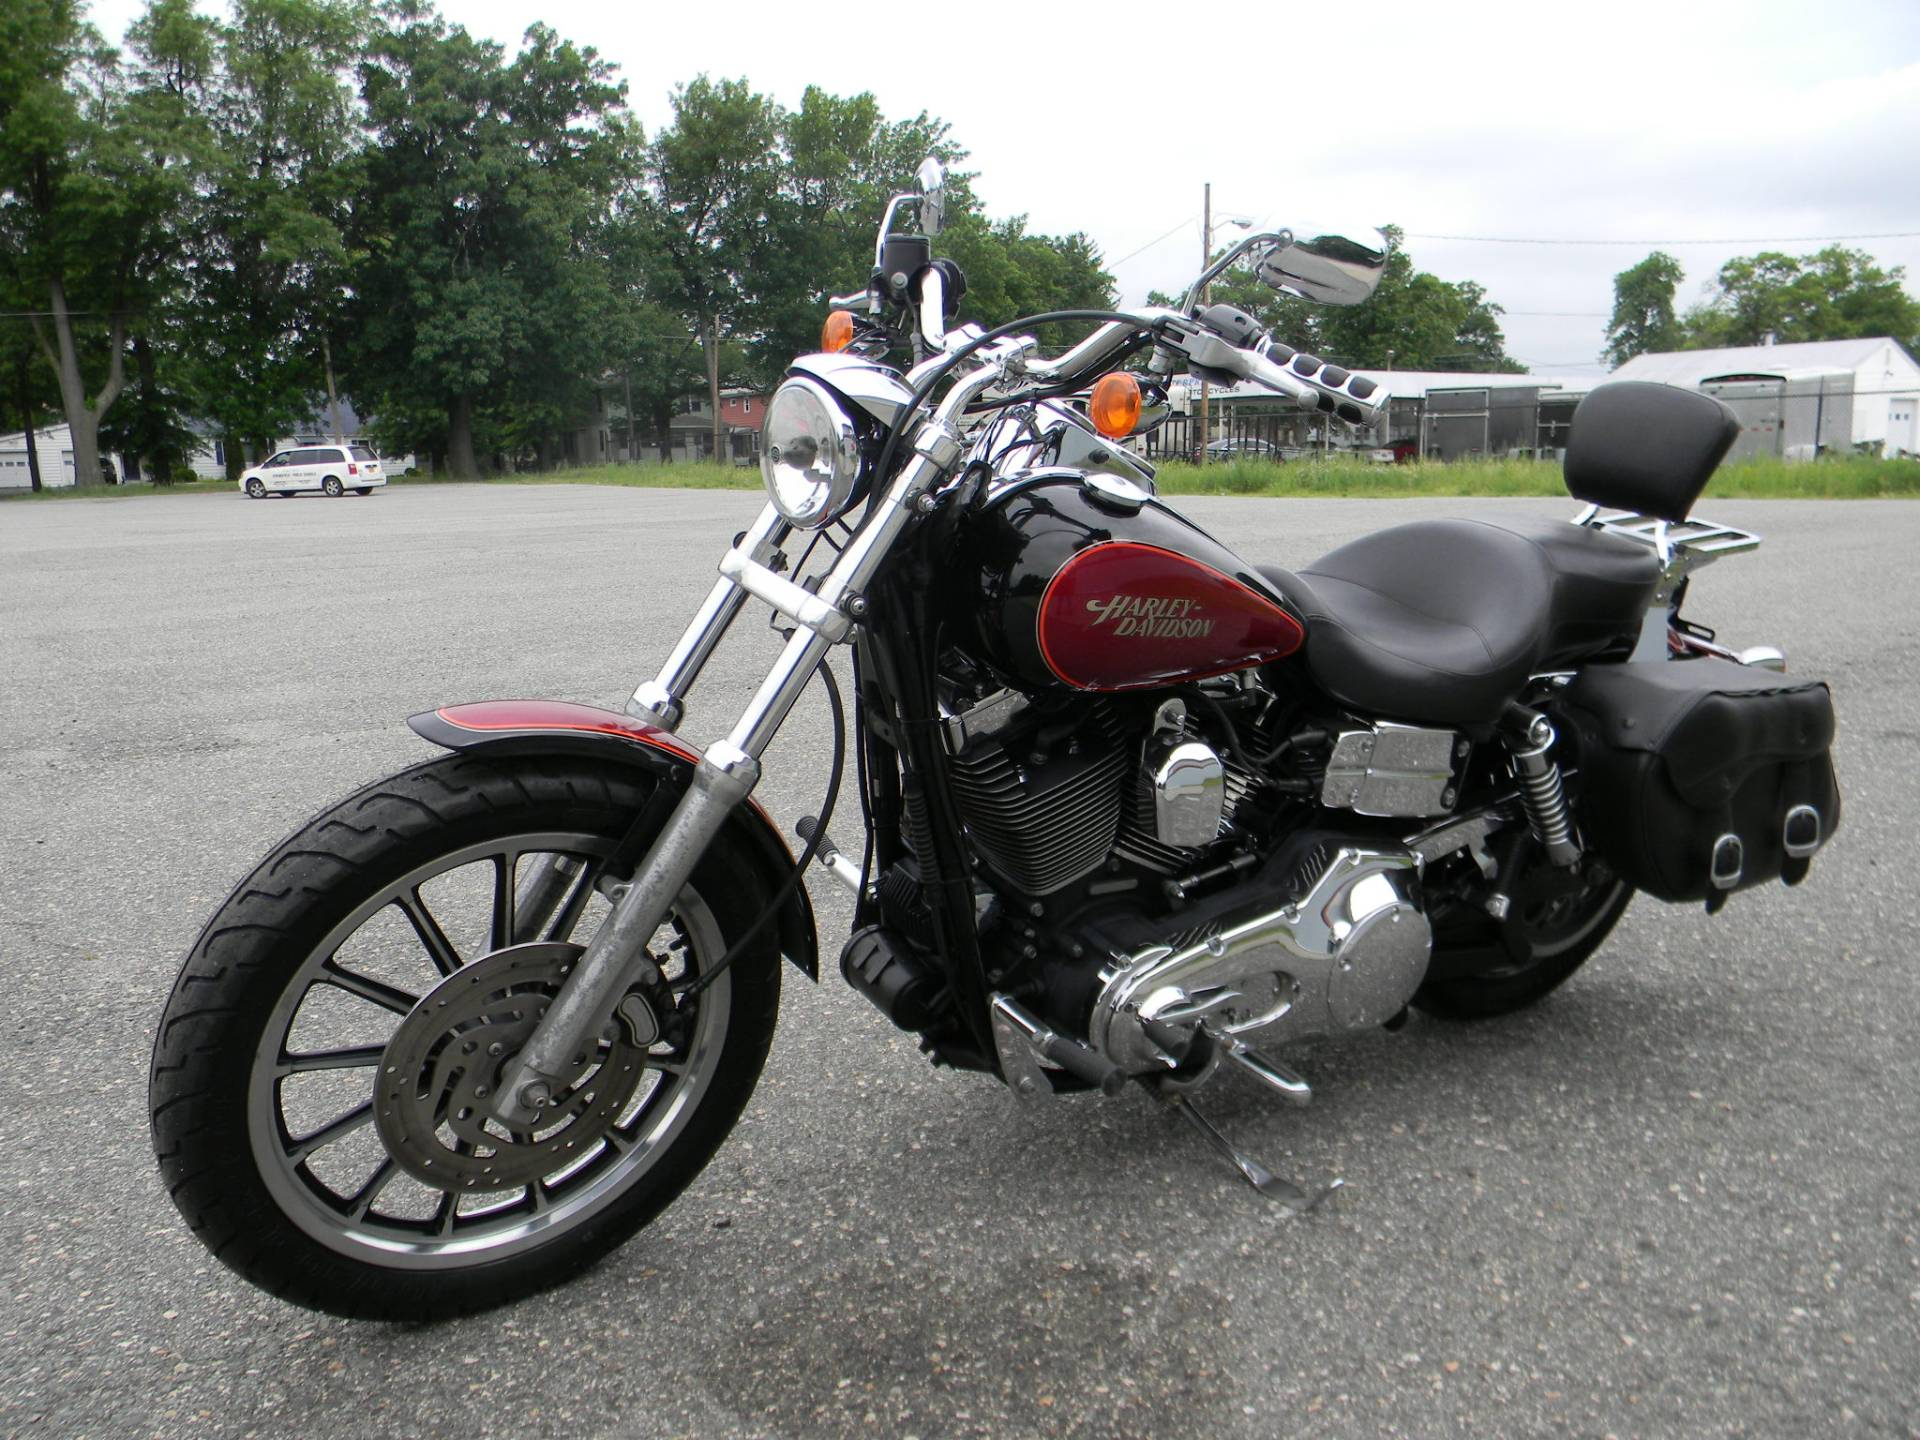 2005 Harley-Davidson FXDL/FXDLI Dyna Low Rider® in Springfield, Massachusetts